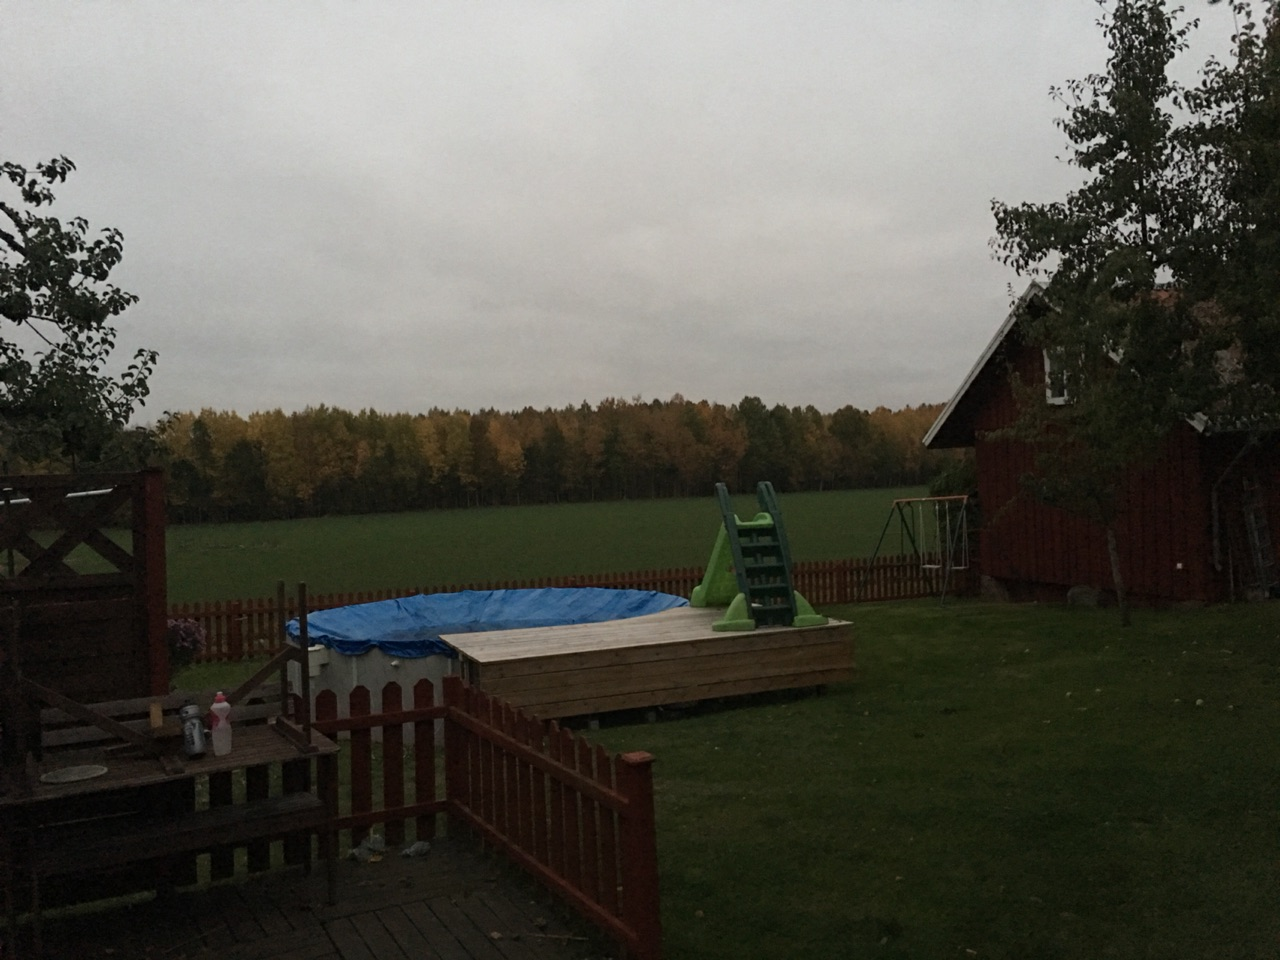 Paul's backyard spa prepped for winter